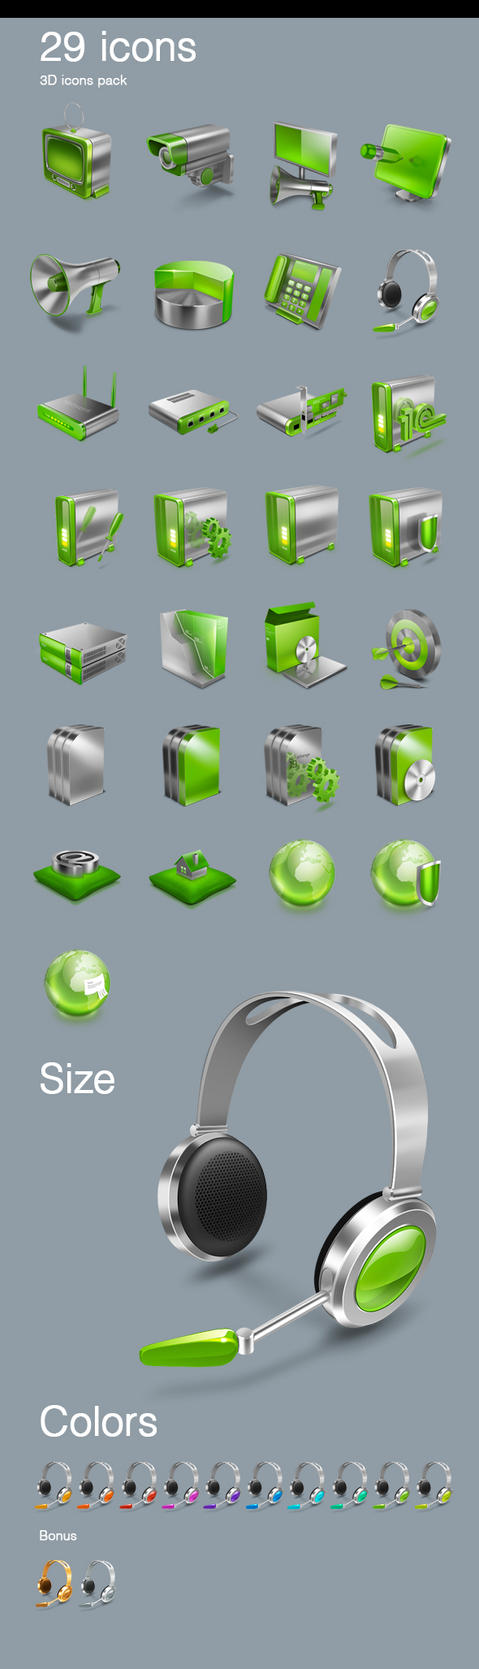 3D glosy icons sale by TIT0